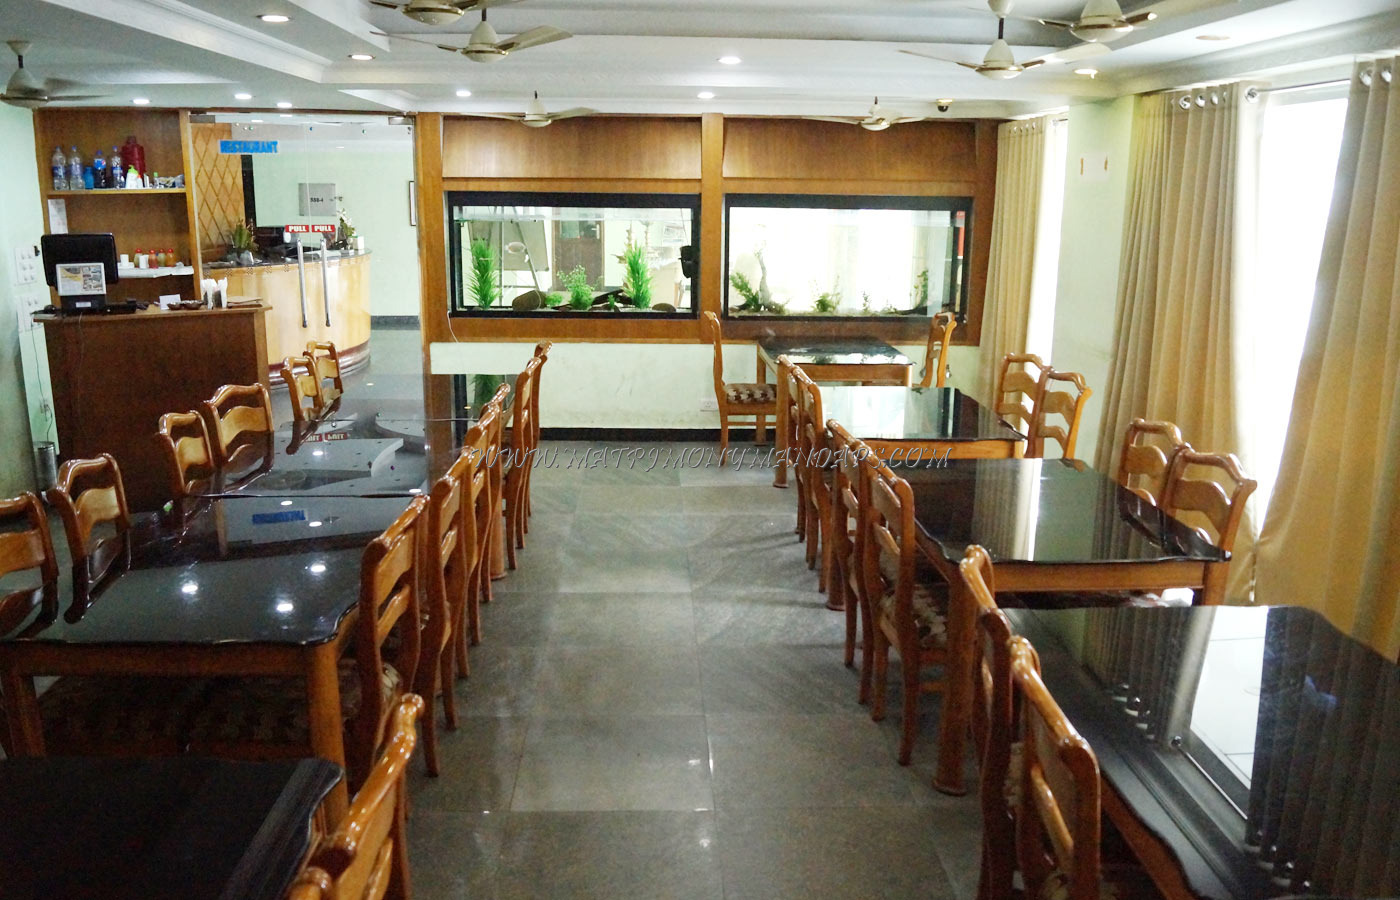 Find the availability of the Boban Residency Conference Hall (A/C) in Thampanoor, Trivandrum and avail special offers